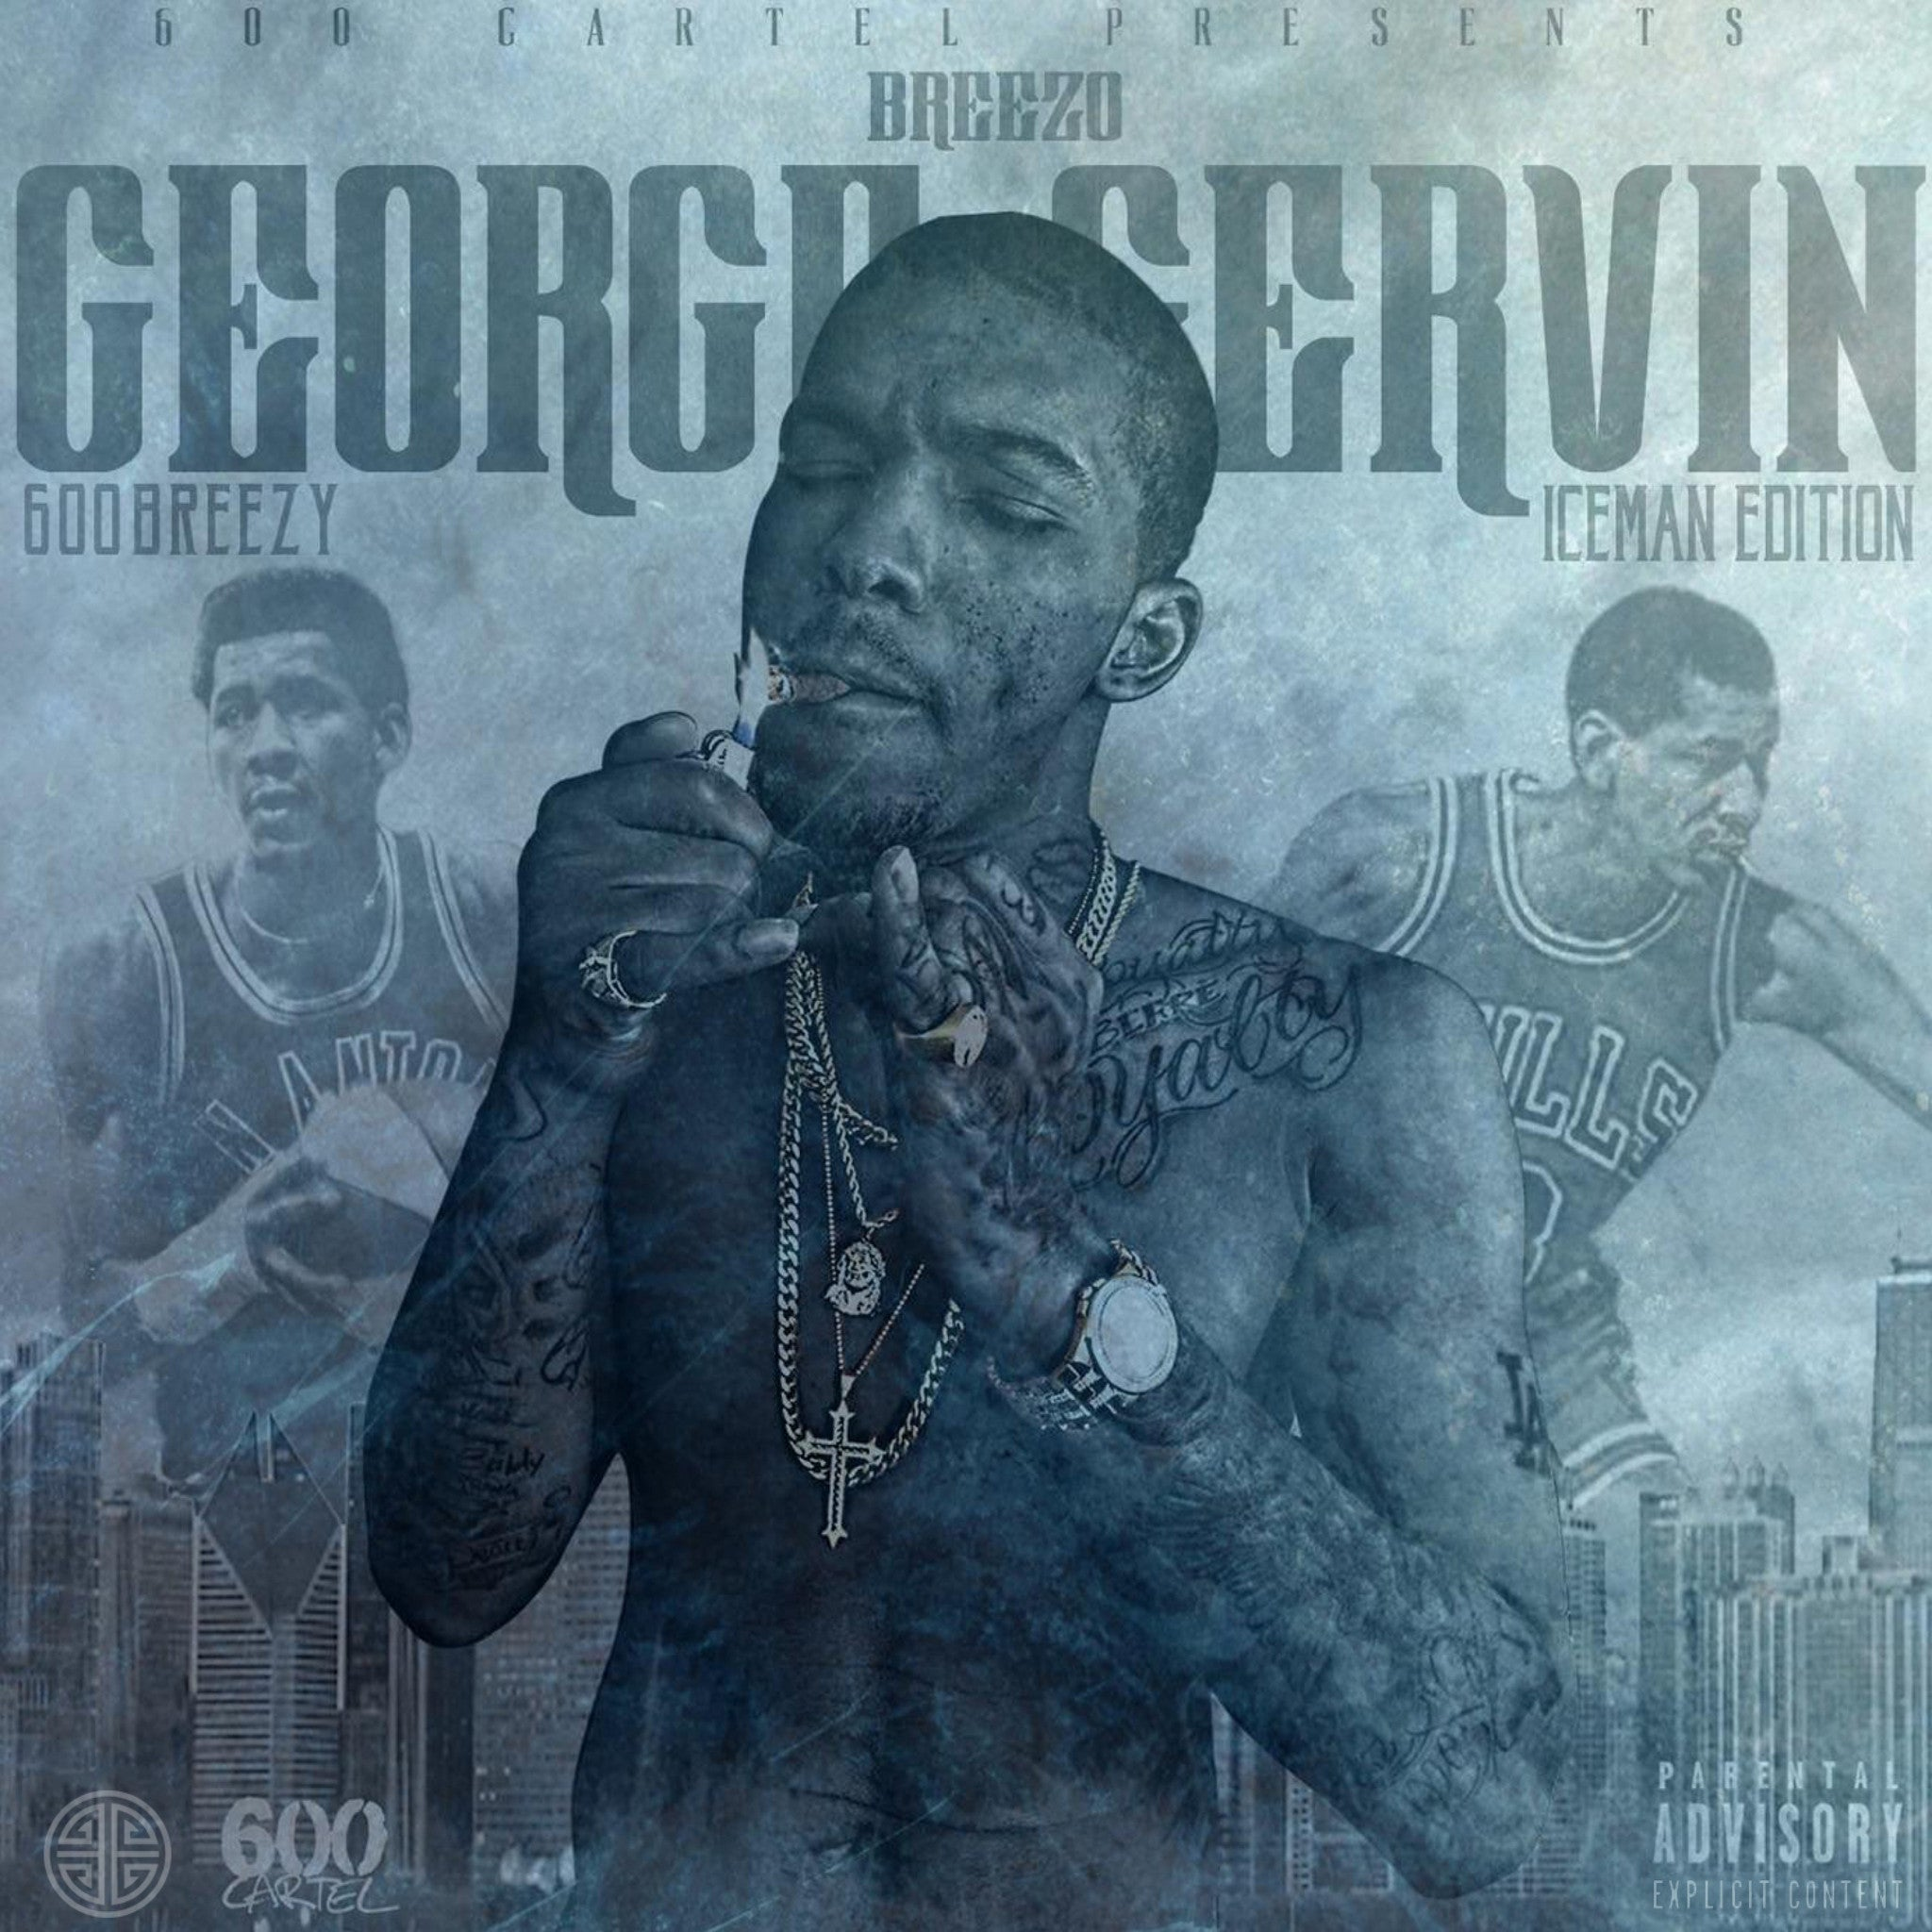 600Breezy Breezo George Gervin Iceman Edition CD – EMPIRE